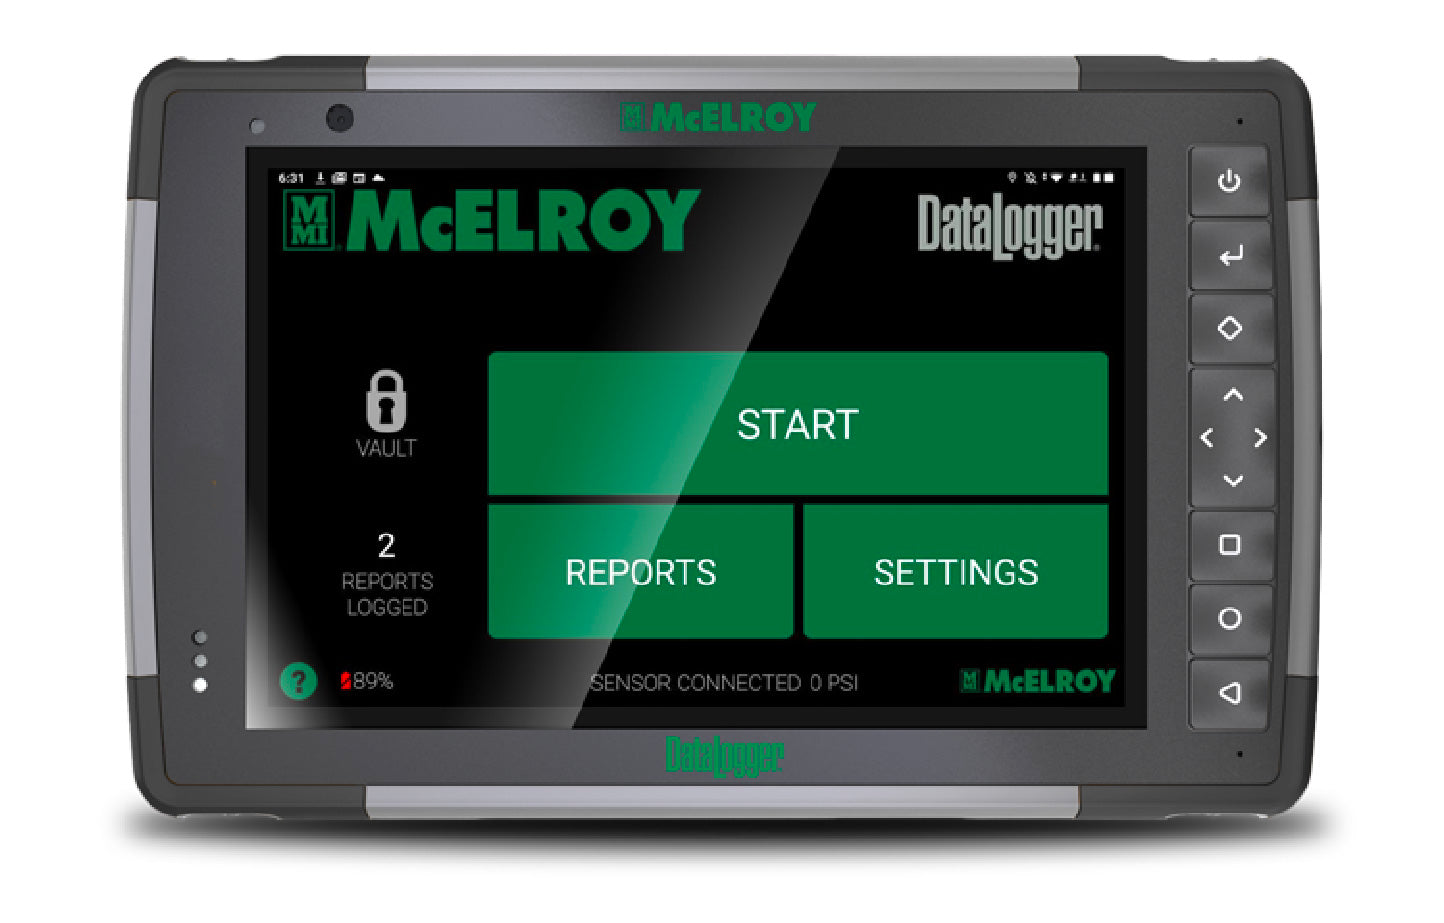 The McElroy Datalogger 7